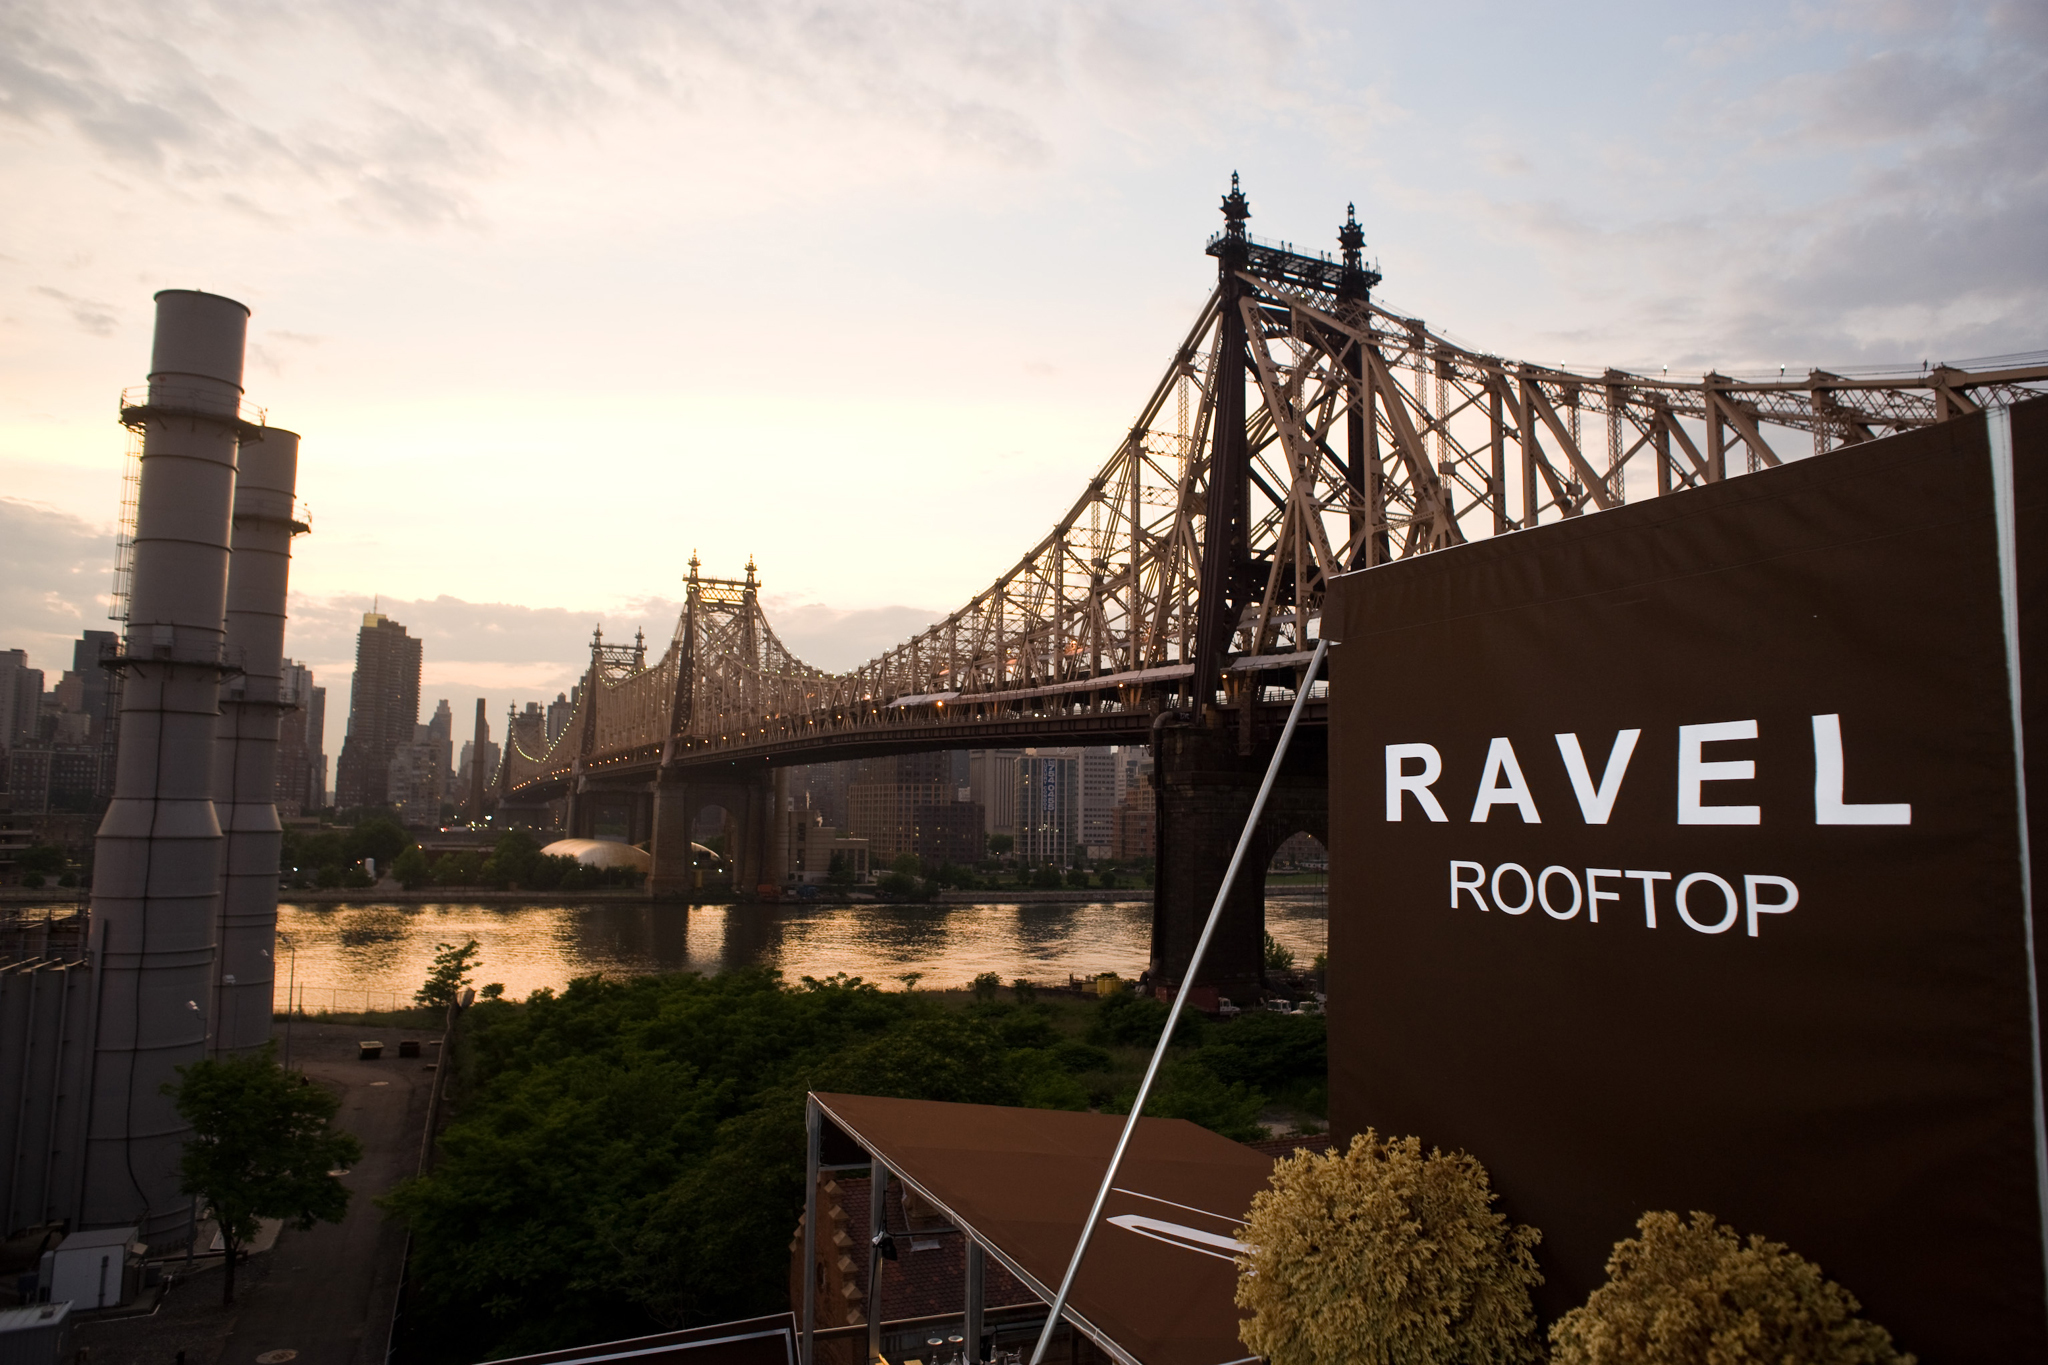 The Ravel Rooftop Bar & Lounge